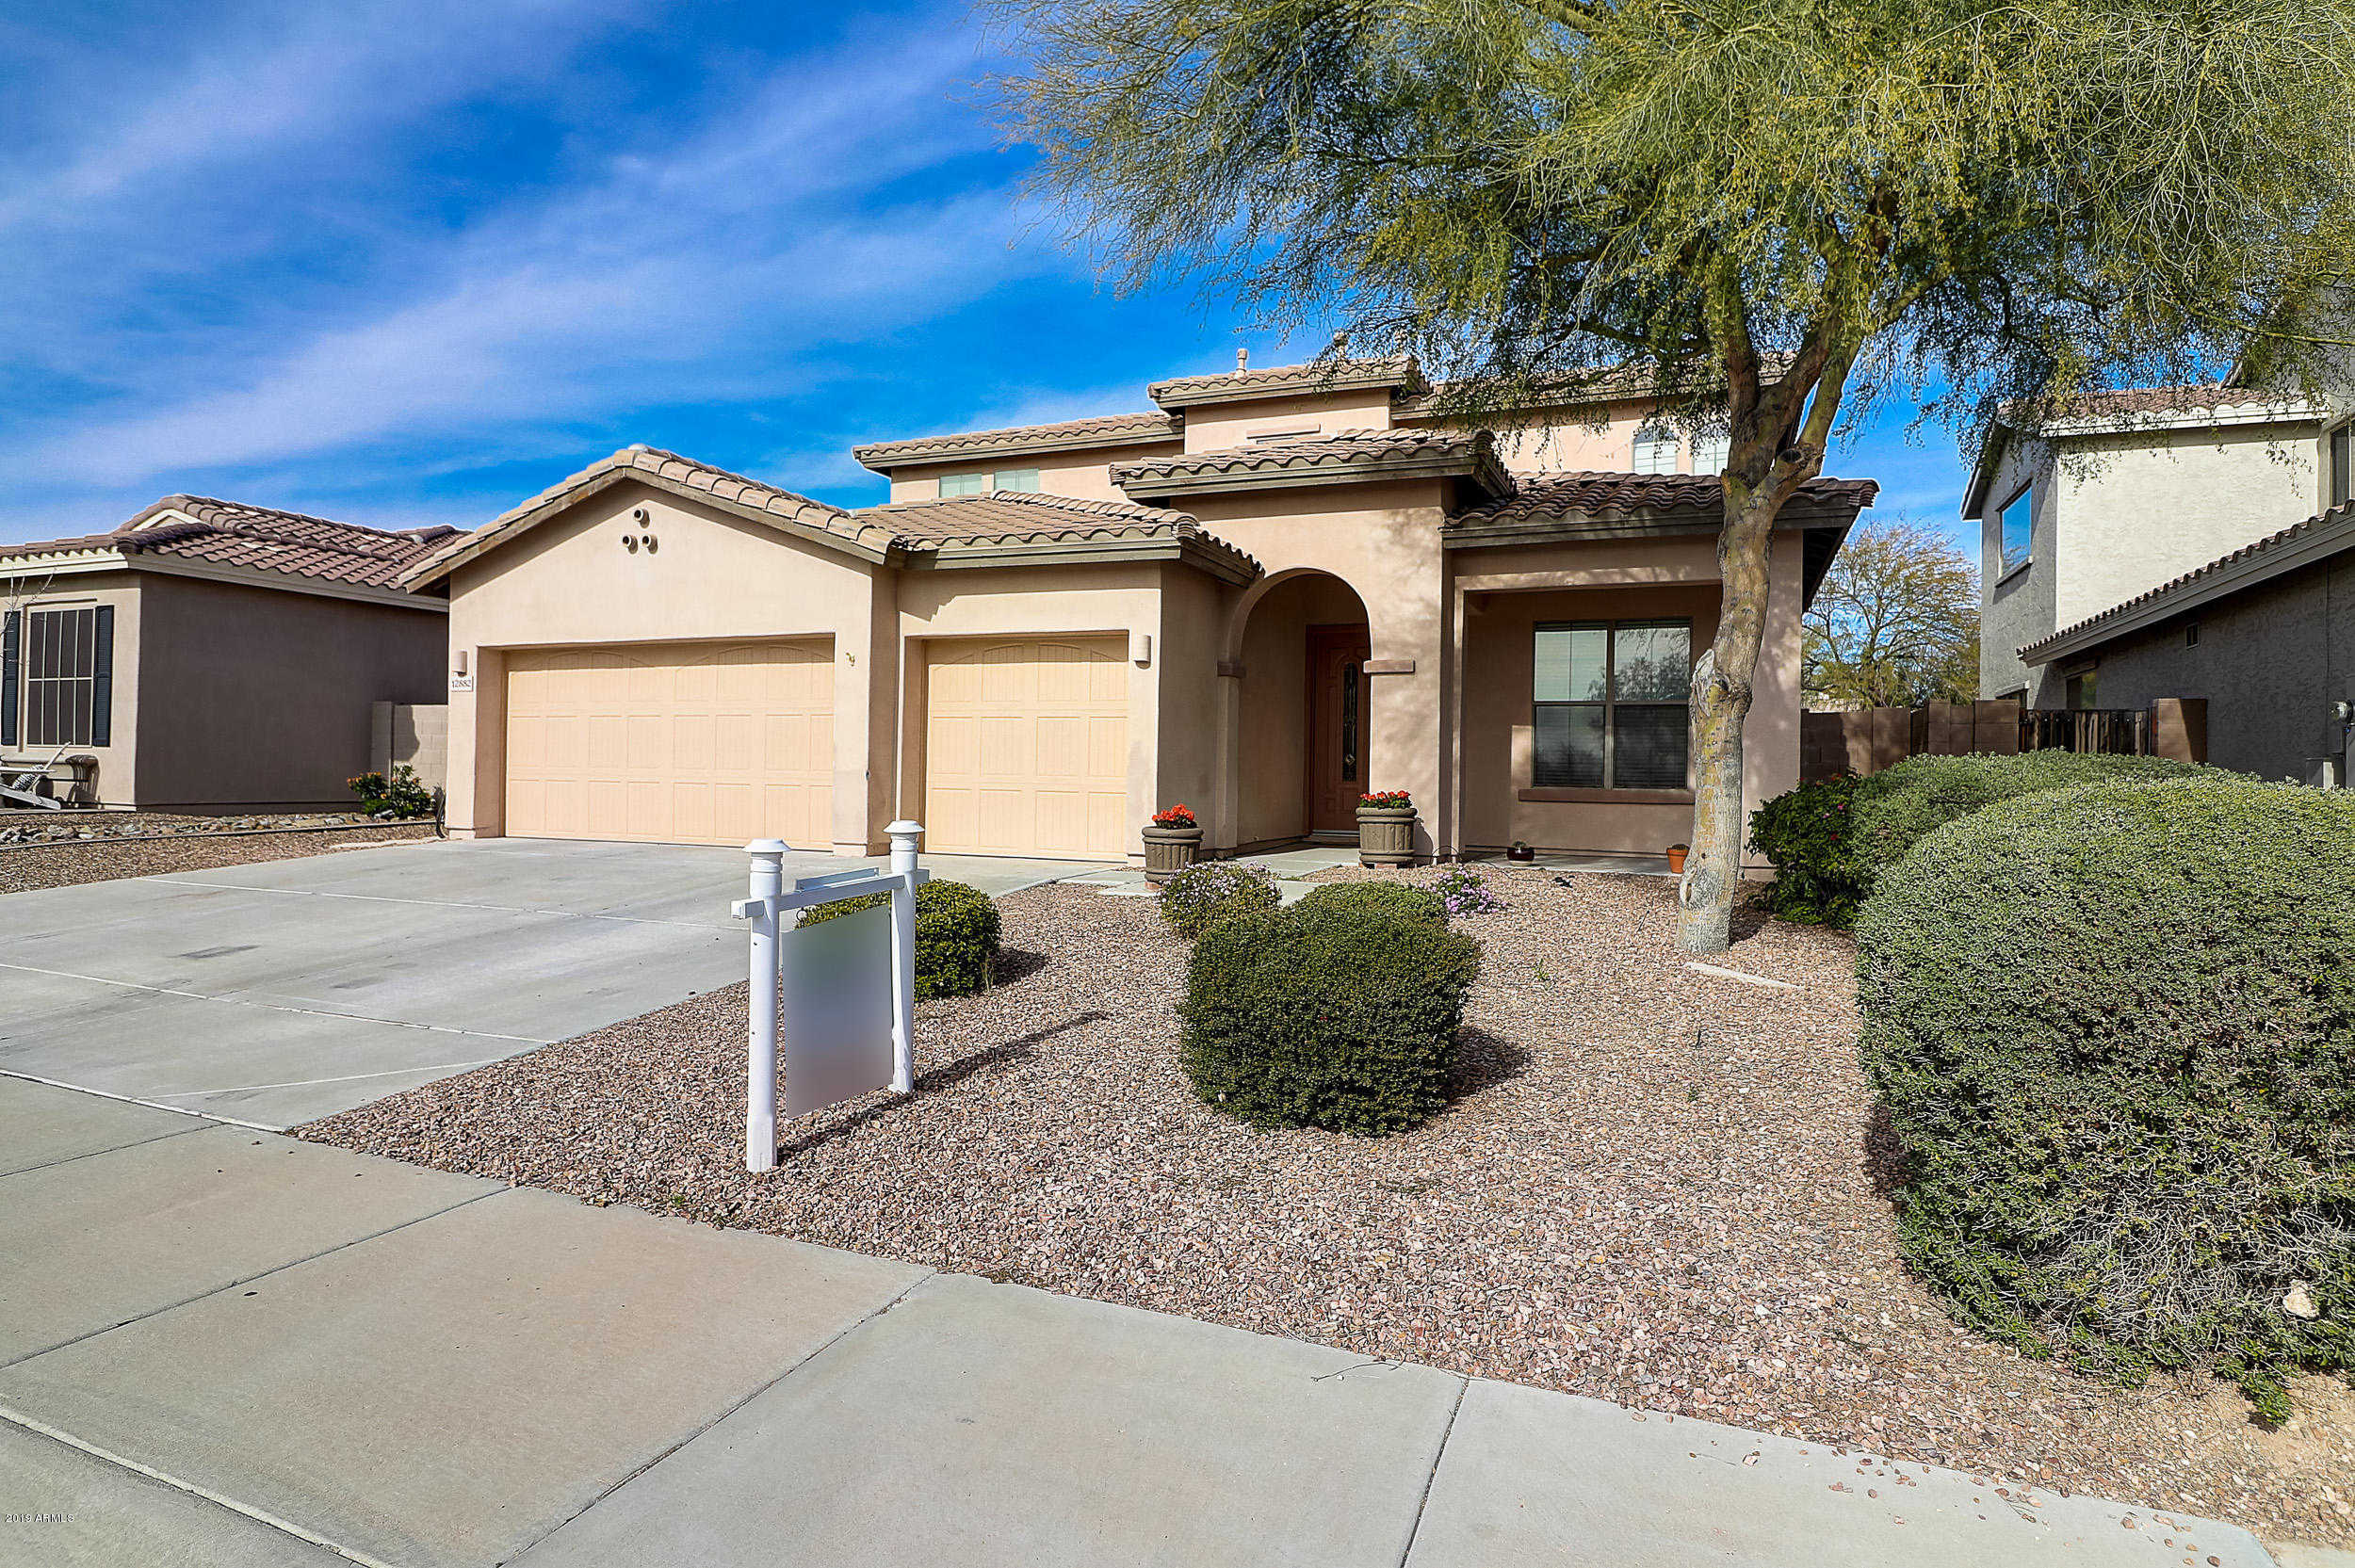 $389,500 - 5Br/3Ba - Home for Sale in Vistancia Village A Parcel A36, Peoria